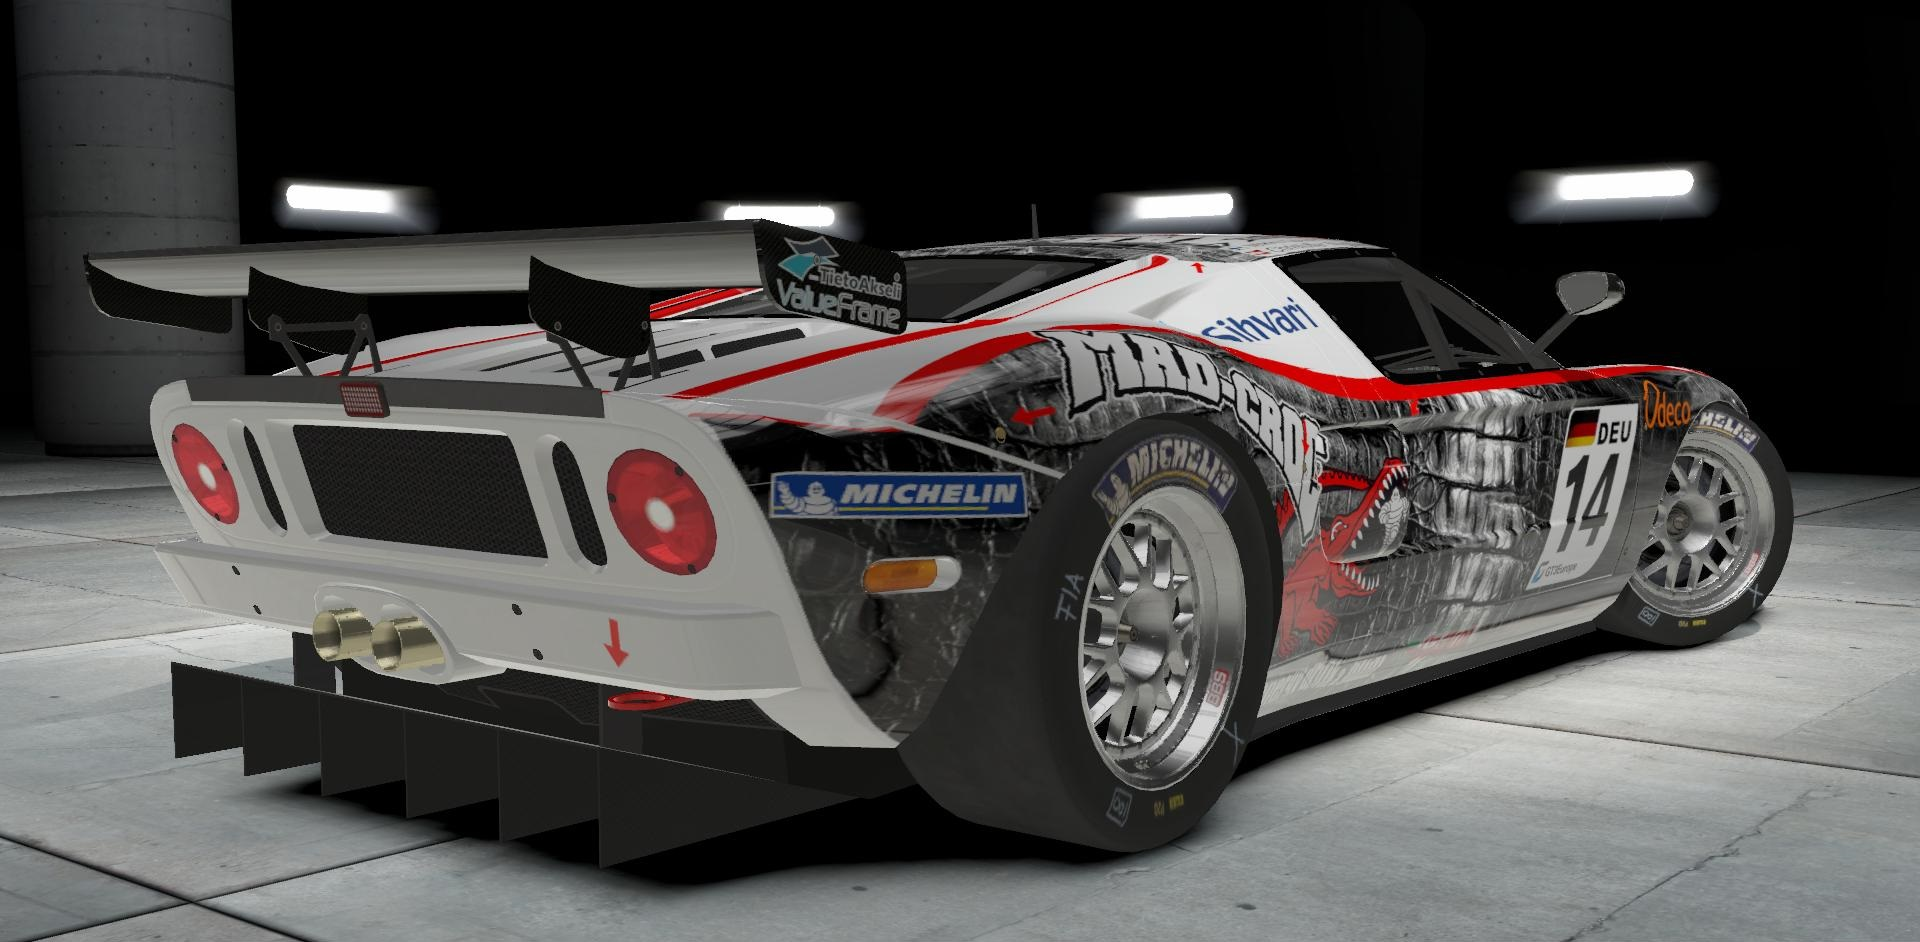 Matech Ford GT GT3   Need for Sd Wiki   FANDOM powered by Wikia on ford model t, ford escape, ford mustang, ford gt40, ford fusion, ford concept, ford gtx1, ford crown victoria, ford supercar, ford gt4, ford gt1000, ford gtr, ford gt500, ford gran turismo, ford gt350, ford mustanggt, ford evos, ford lightning, ford maverick,